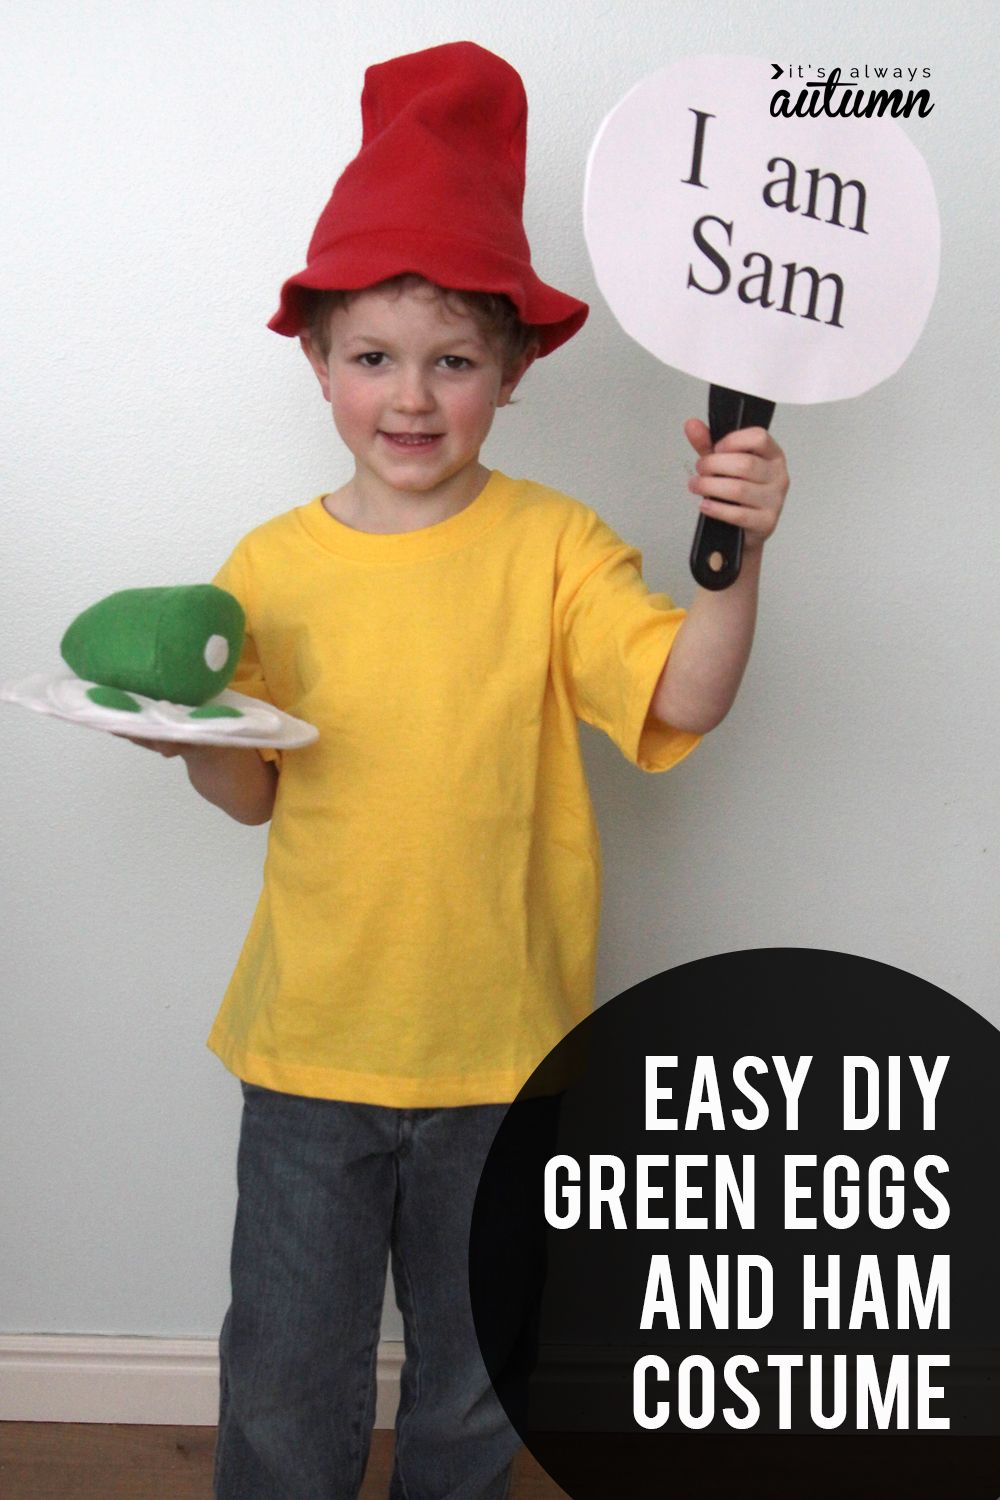 easy diy green eggs and ham costumes for dr. suess day in 2018